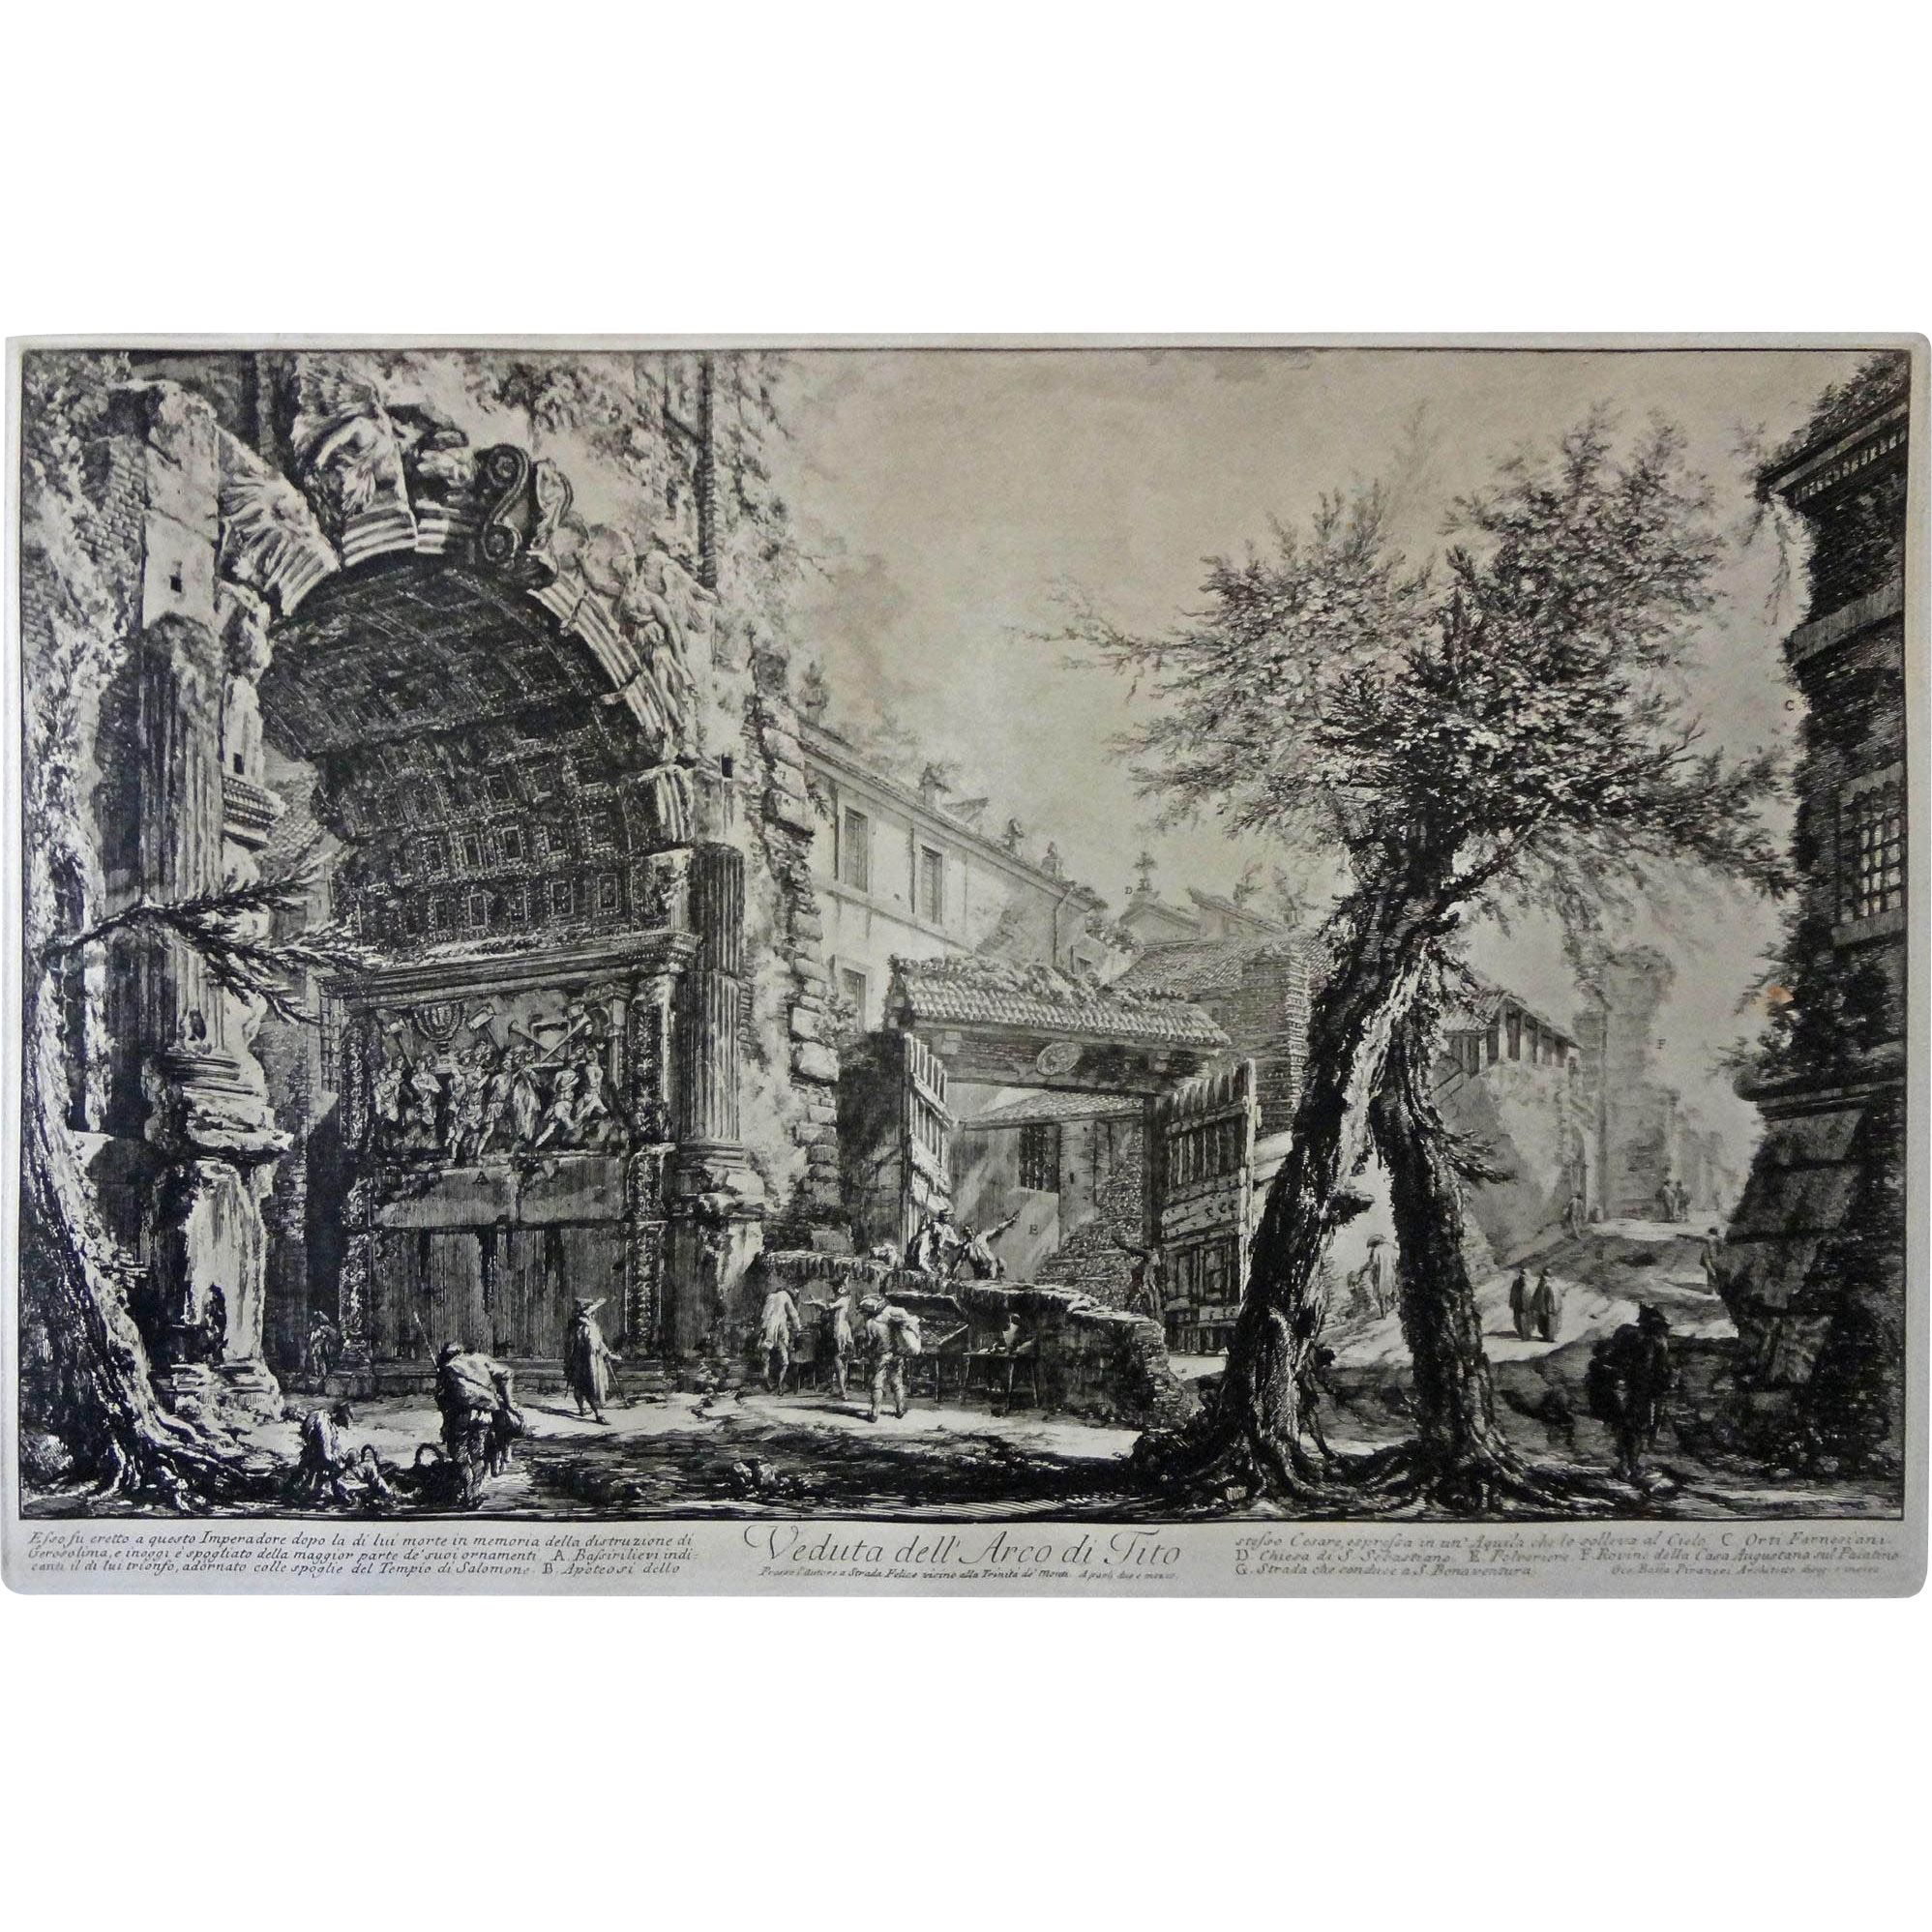 Etching after Giovanni Battista Piranesi Veduta dell' Arco di Tito